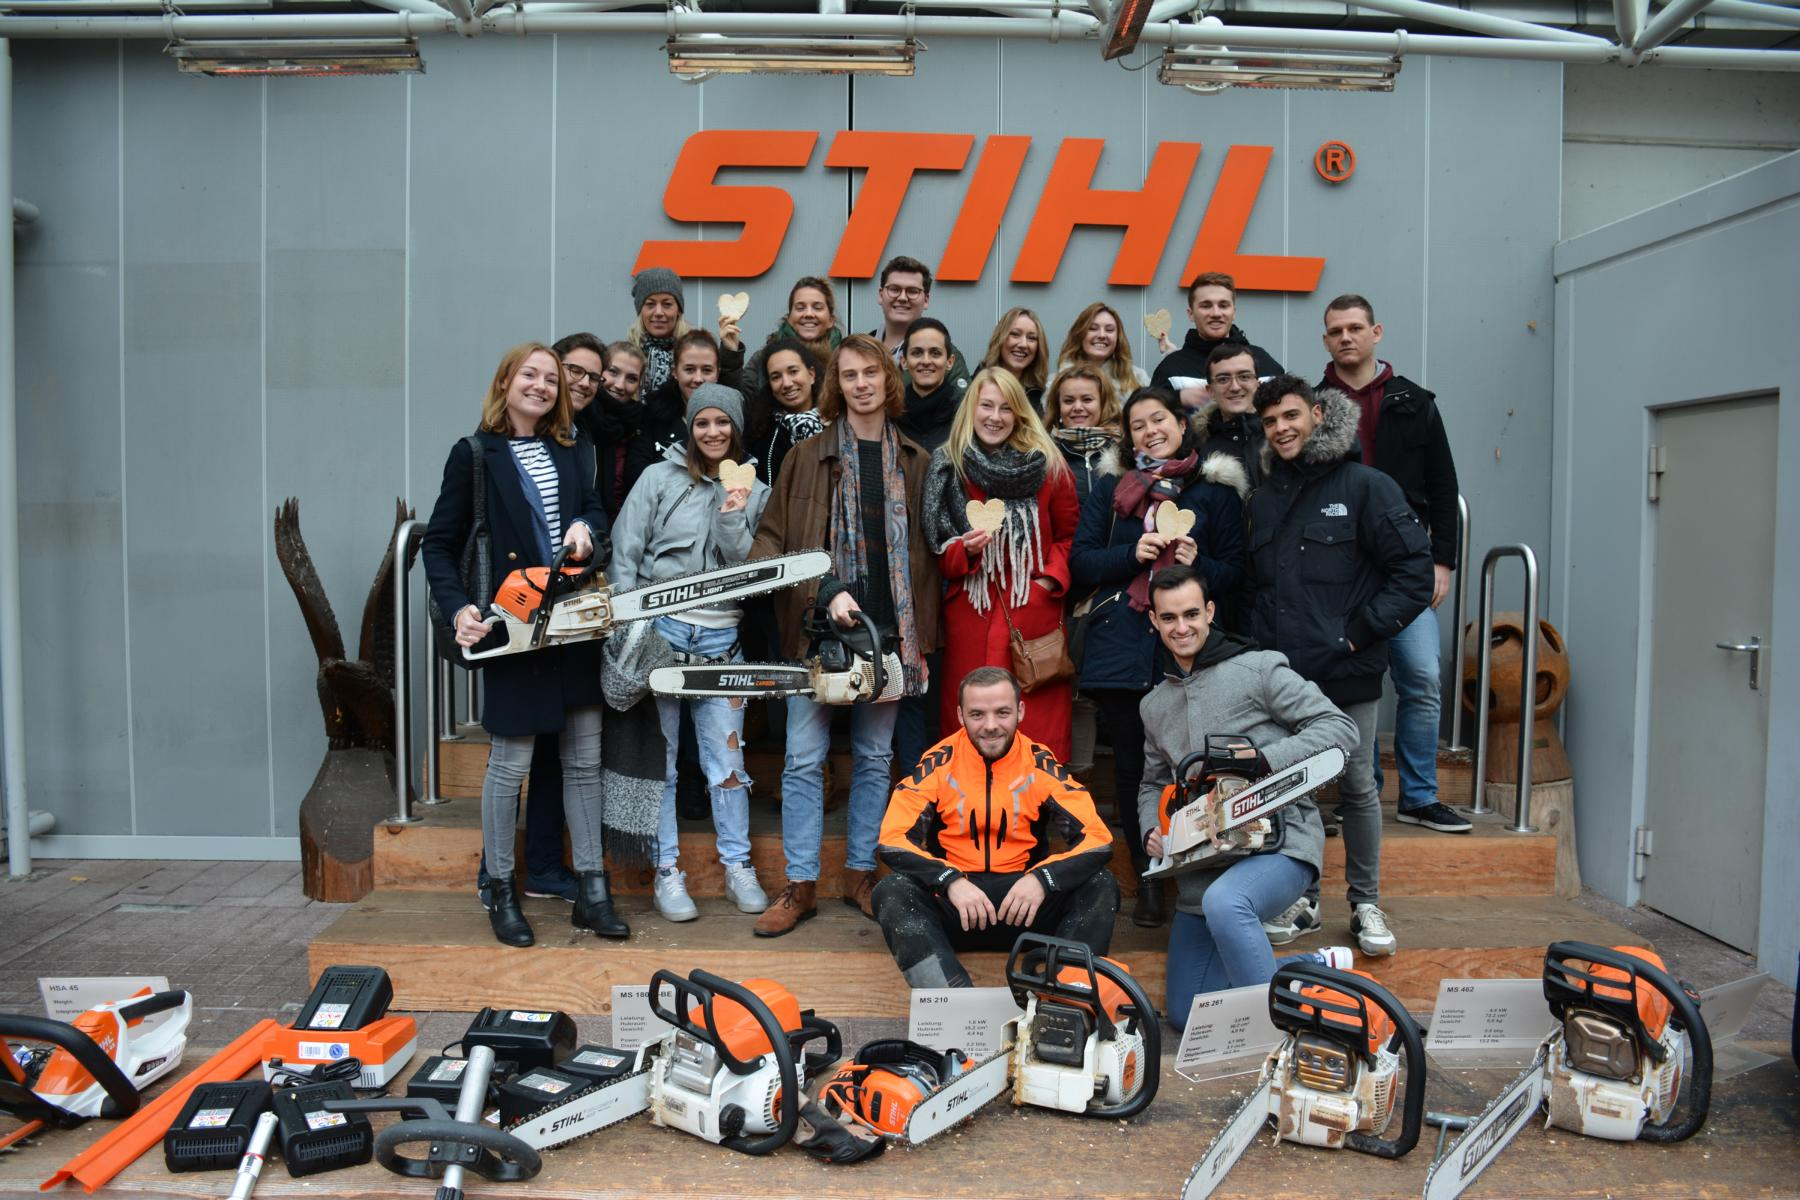 Besuch bei Andreas Stihl